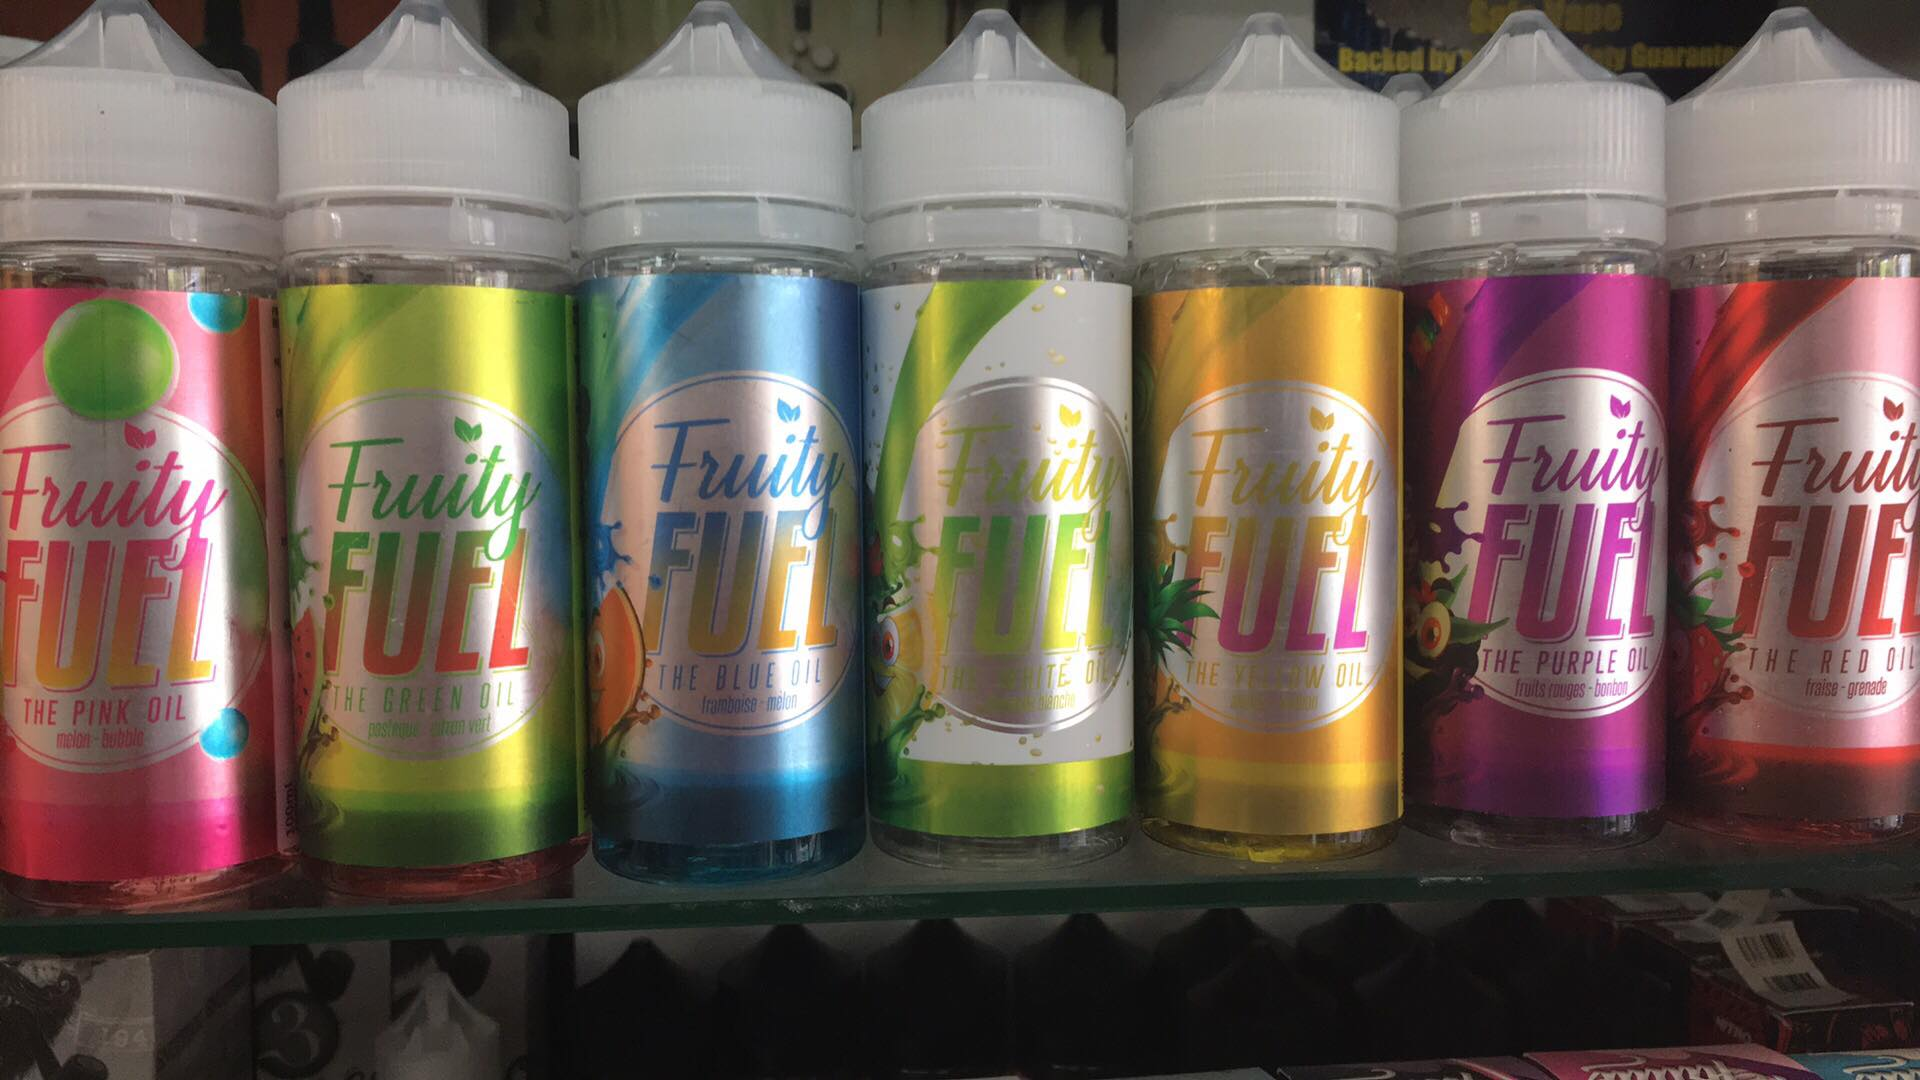 Eliquid Fruity Fuel 100ml 0mg